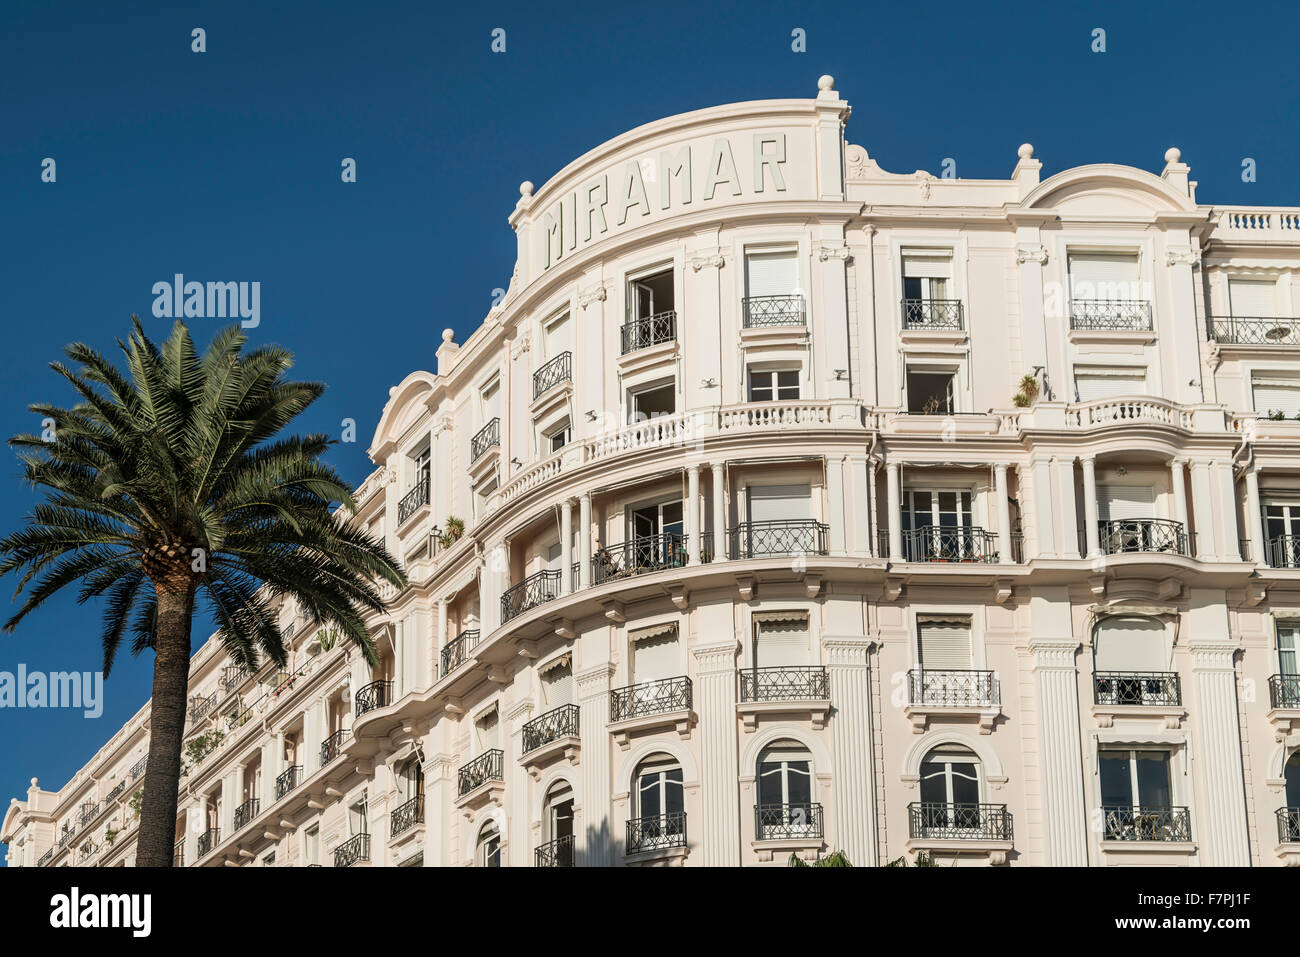 Mirarmar Hotel, Facade, Palm tree, Cannes, Cote d'Azur, France, - Stock Image